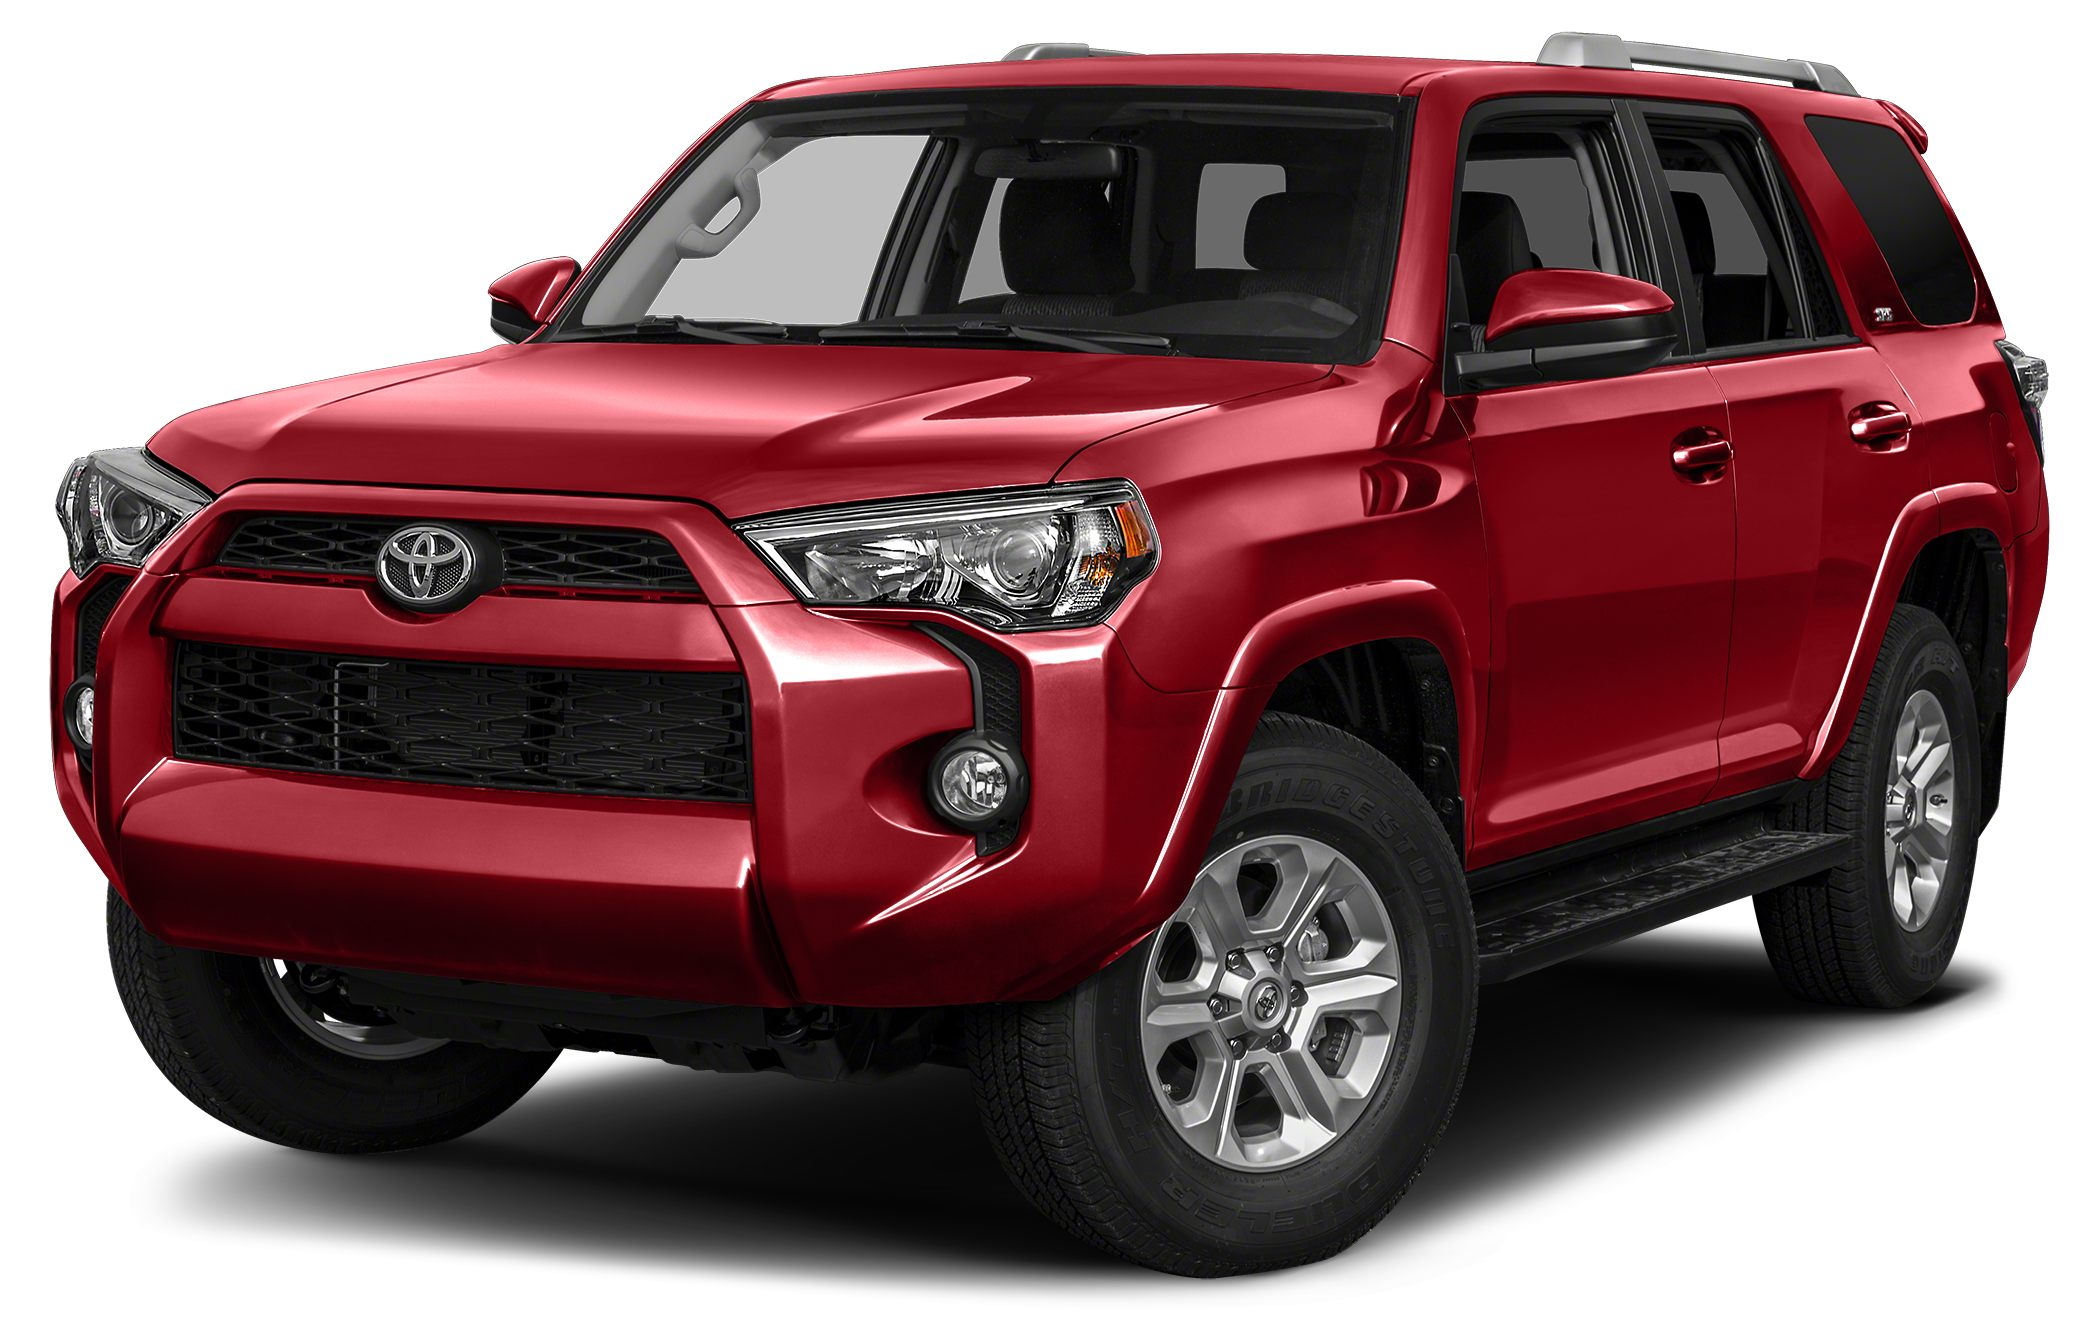 2016 Toyota 4Runner SR5 Premium Miles 0Color Barcelona Red Metallic Stock 34076 VIN JTEZU5JR